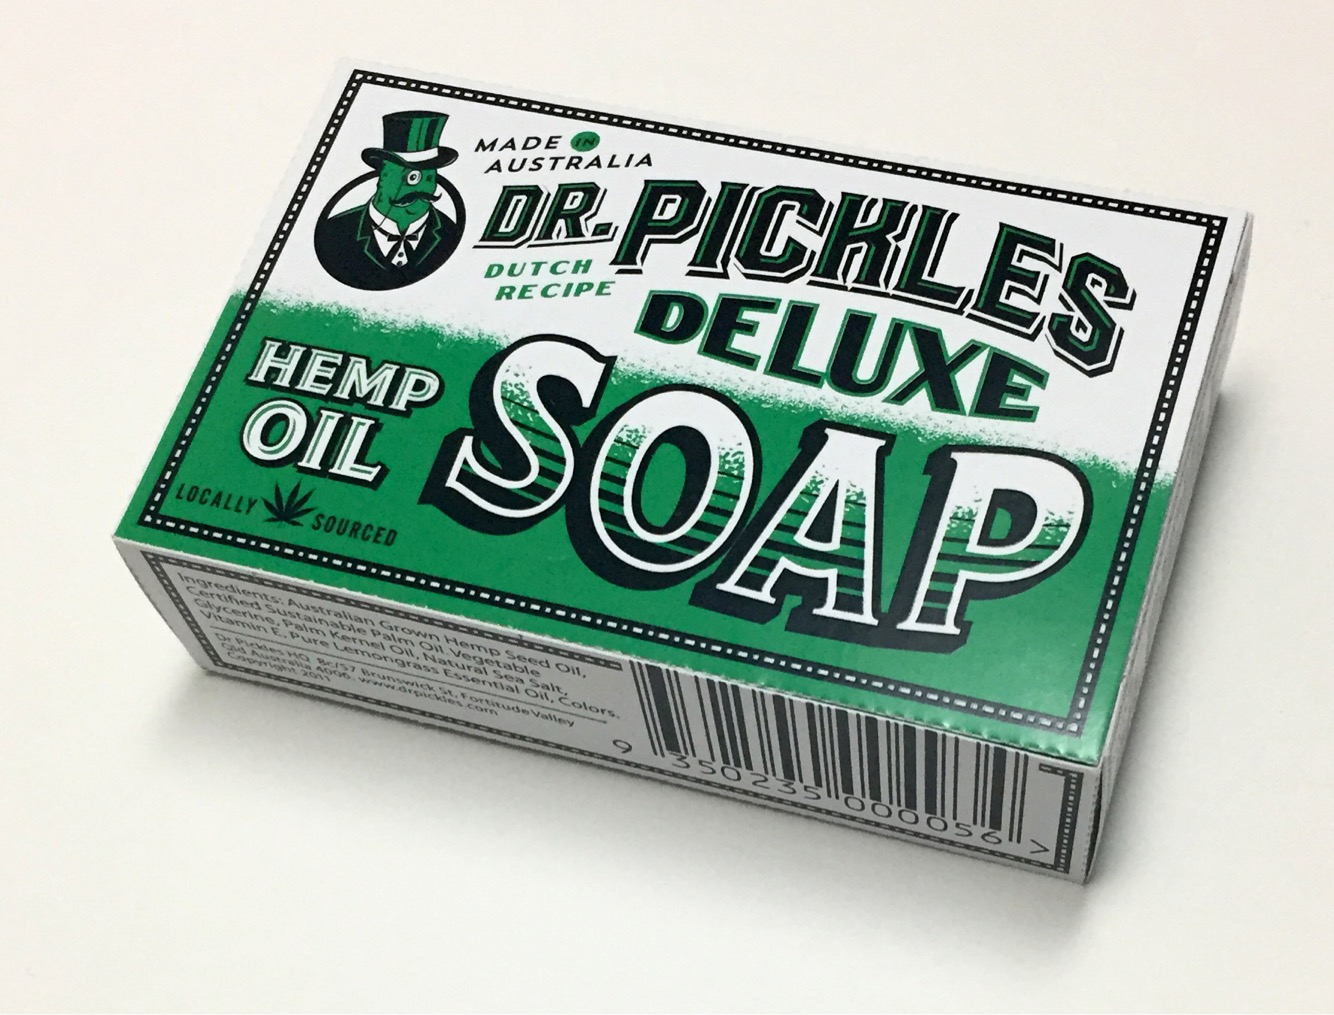 Dr Pickles Deluxe Soap Box Packaging Logo